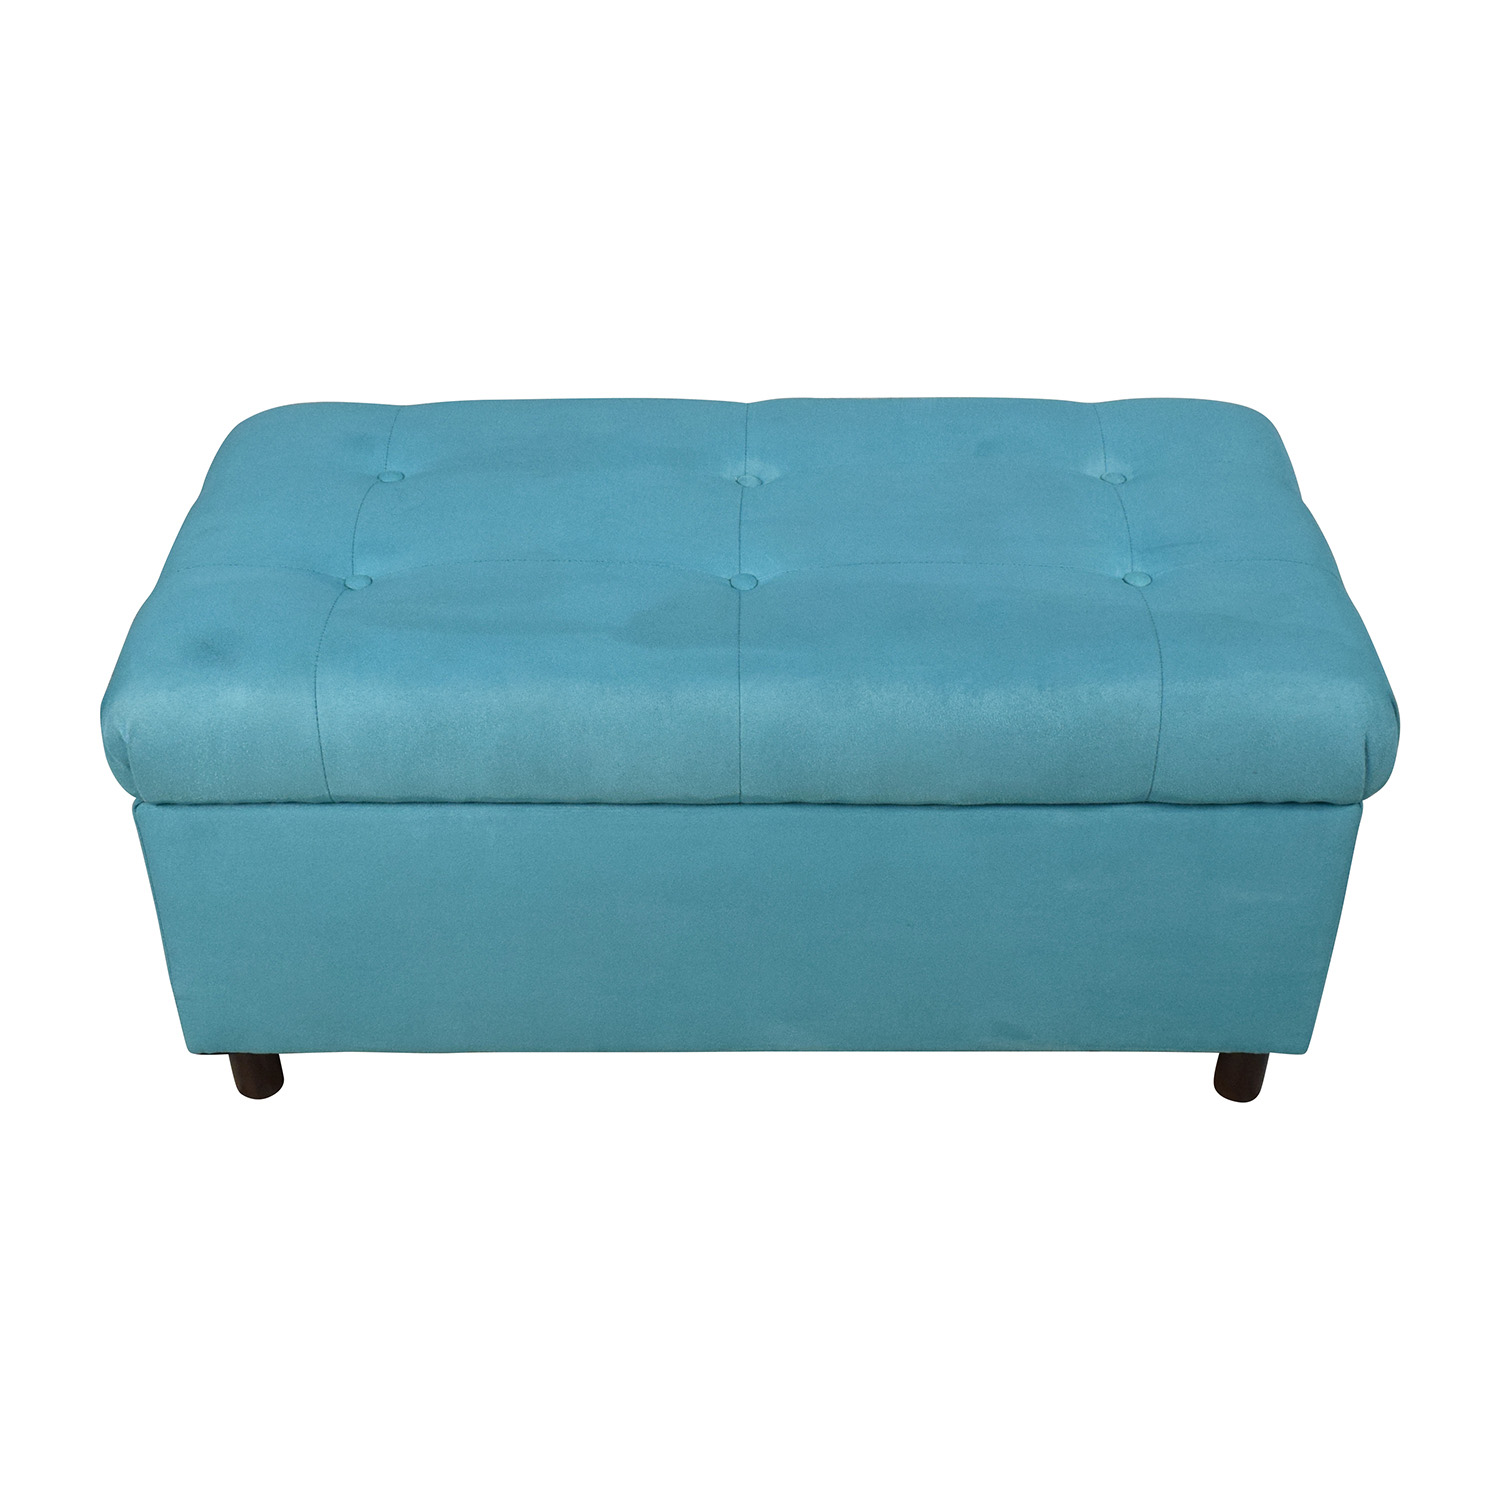 Alcott Hill Alcott Hill Bretton Tufted Top Bench Storage Ottoman on sale